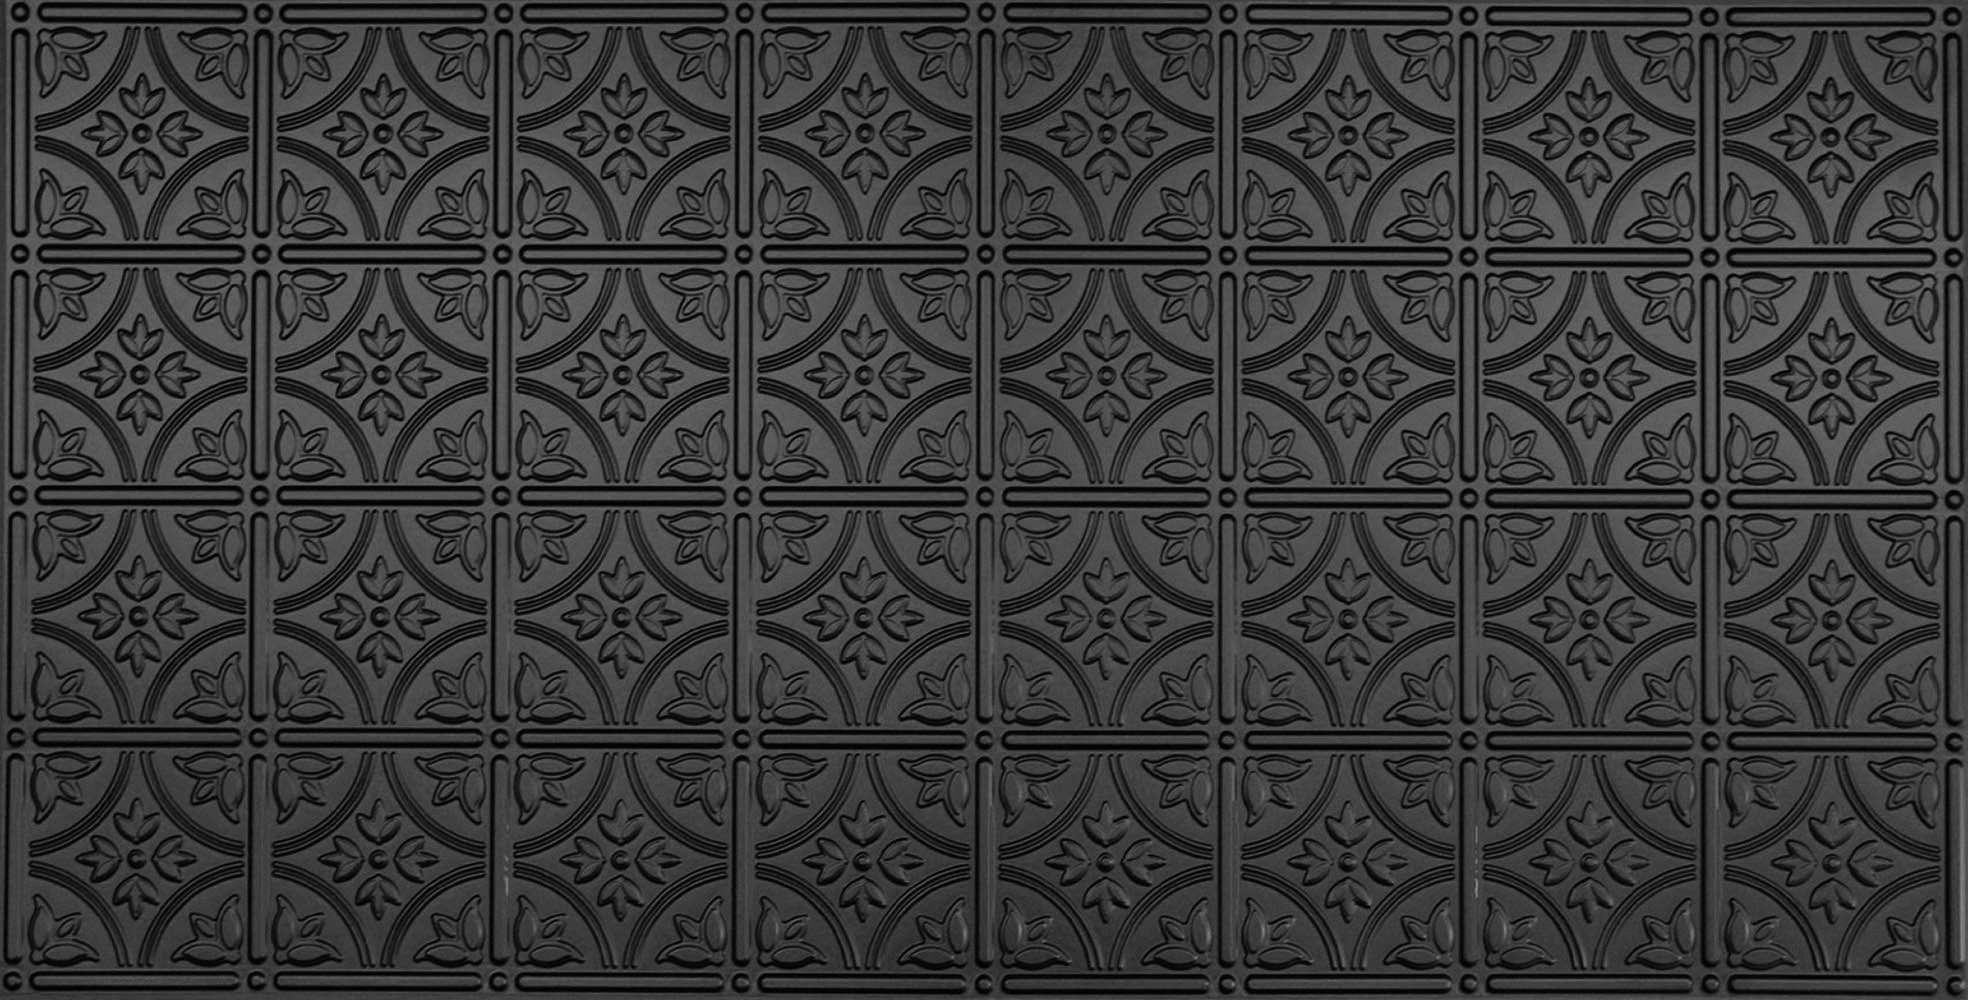 Global Specialty Products Pattern No.209 Tin Style Panel, 2 by 4-Feet, Black by Global Specialty Products